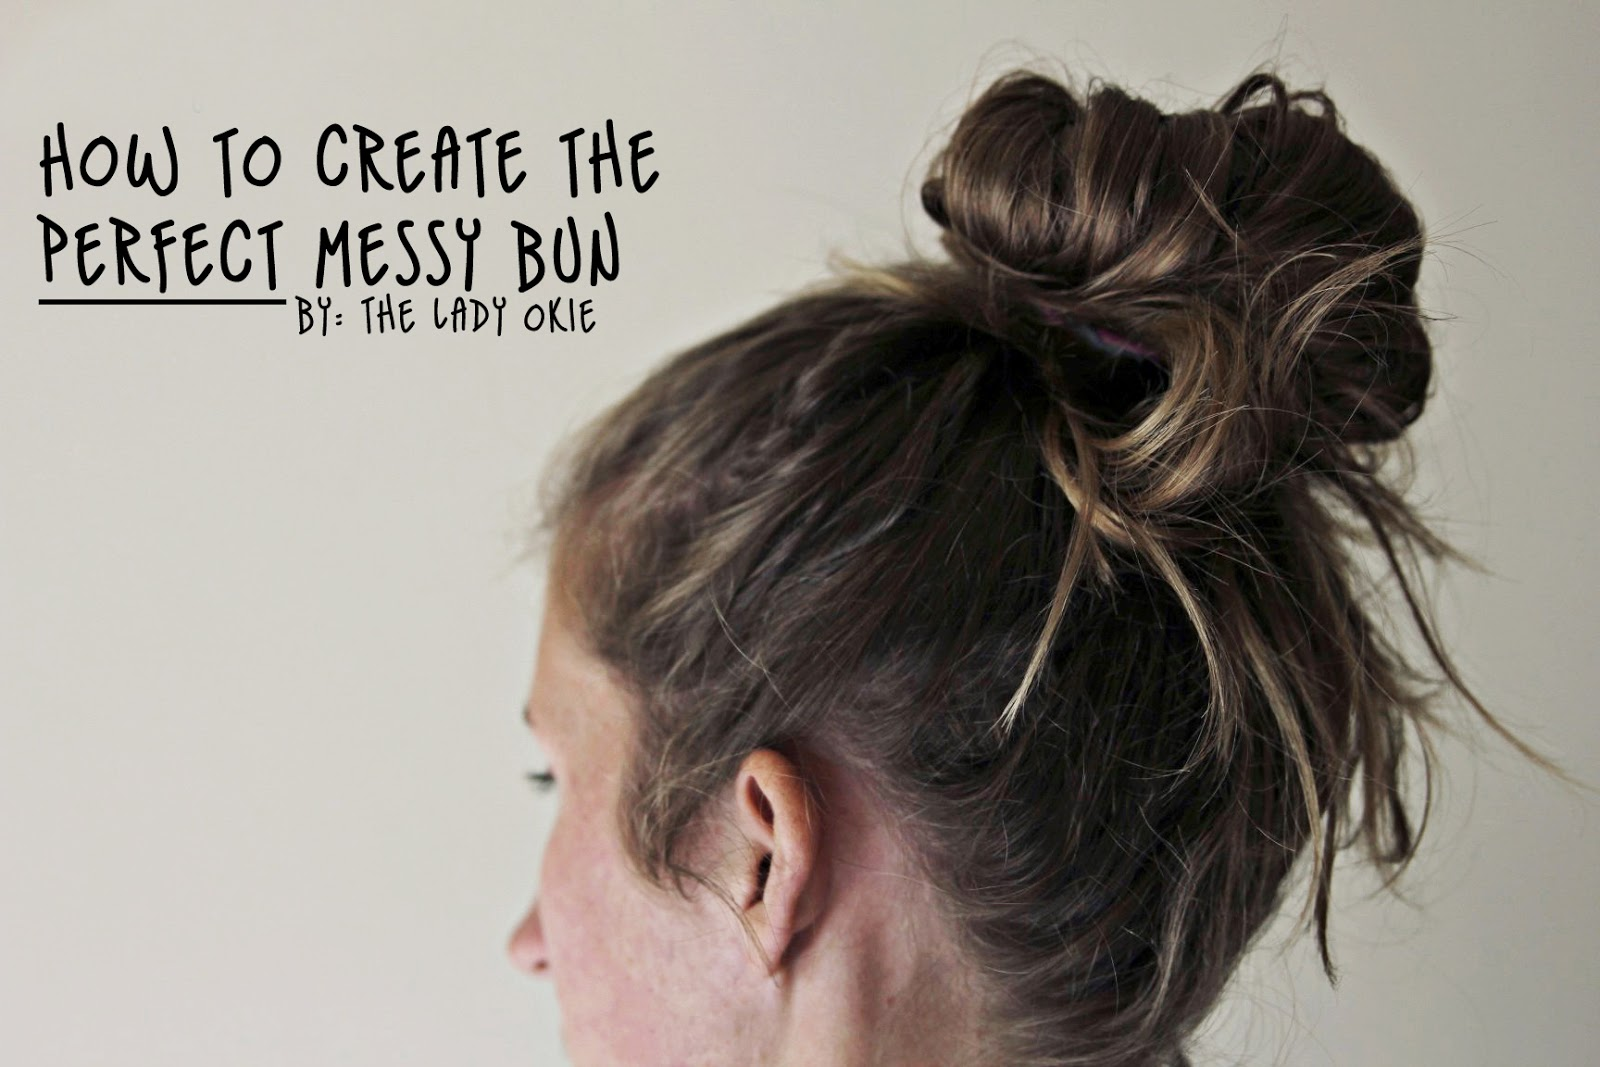 1. Dutch Braids Combined With A Low Messy Bun. As you may know already, there are two different types of messy buns you can opt for: the high bun, which is a great choice for classy women who aim for a more formal and professional look, and the low messy bun which has a more casual look to it.